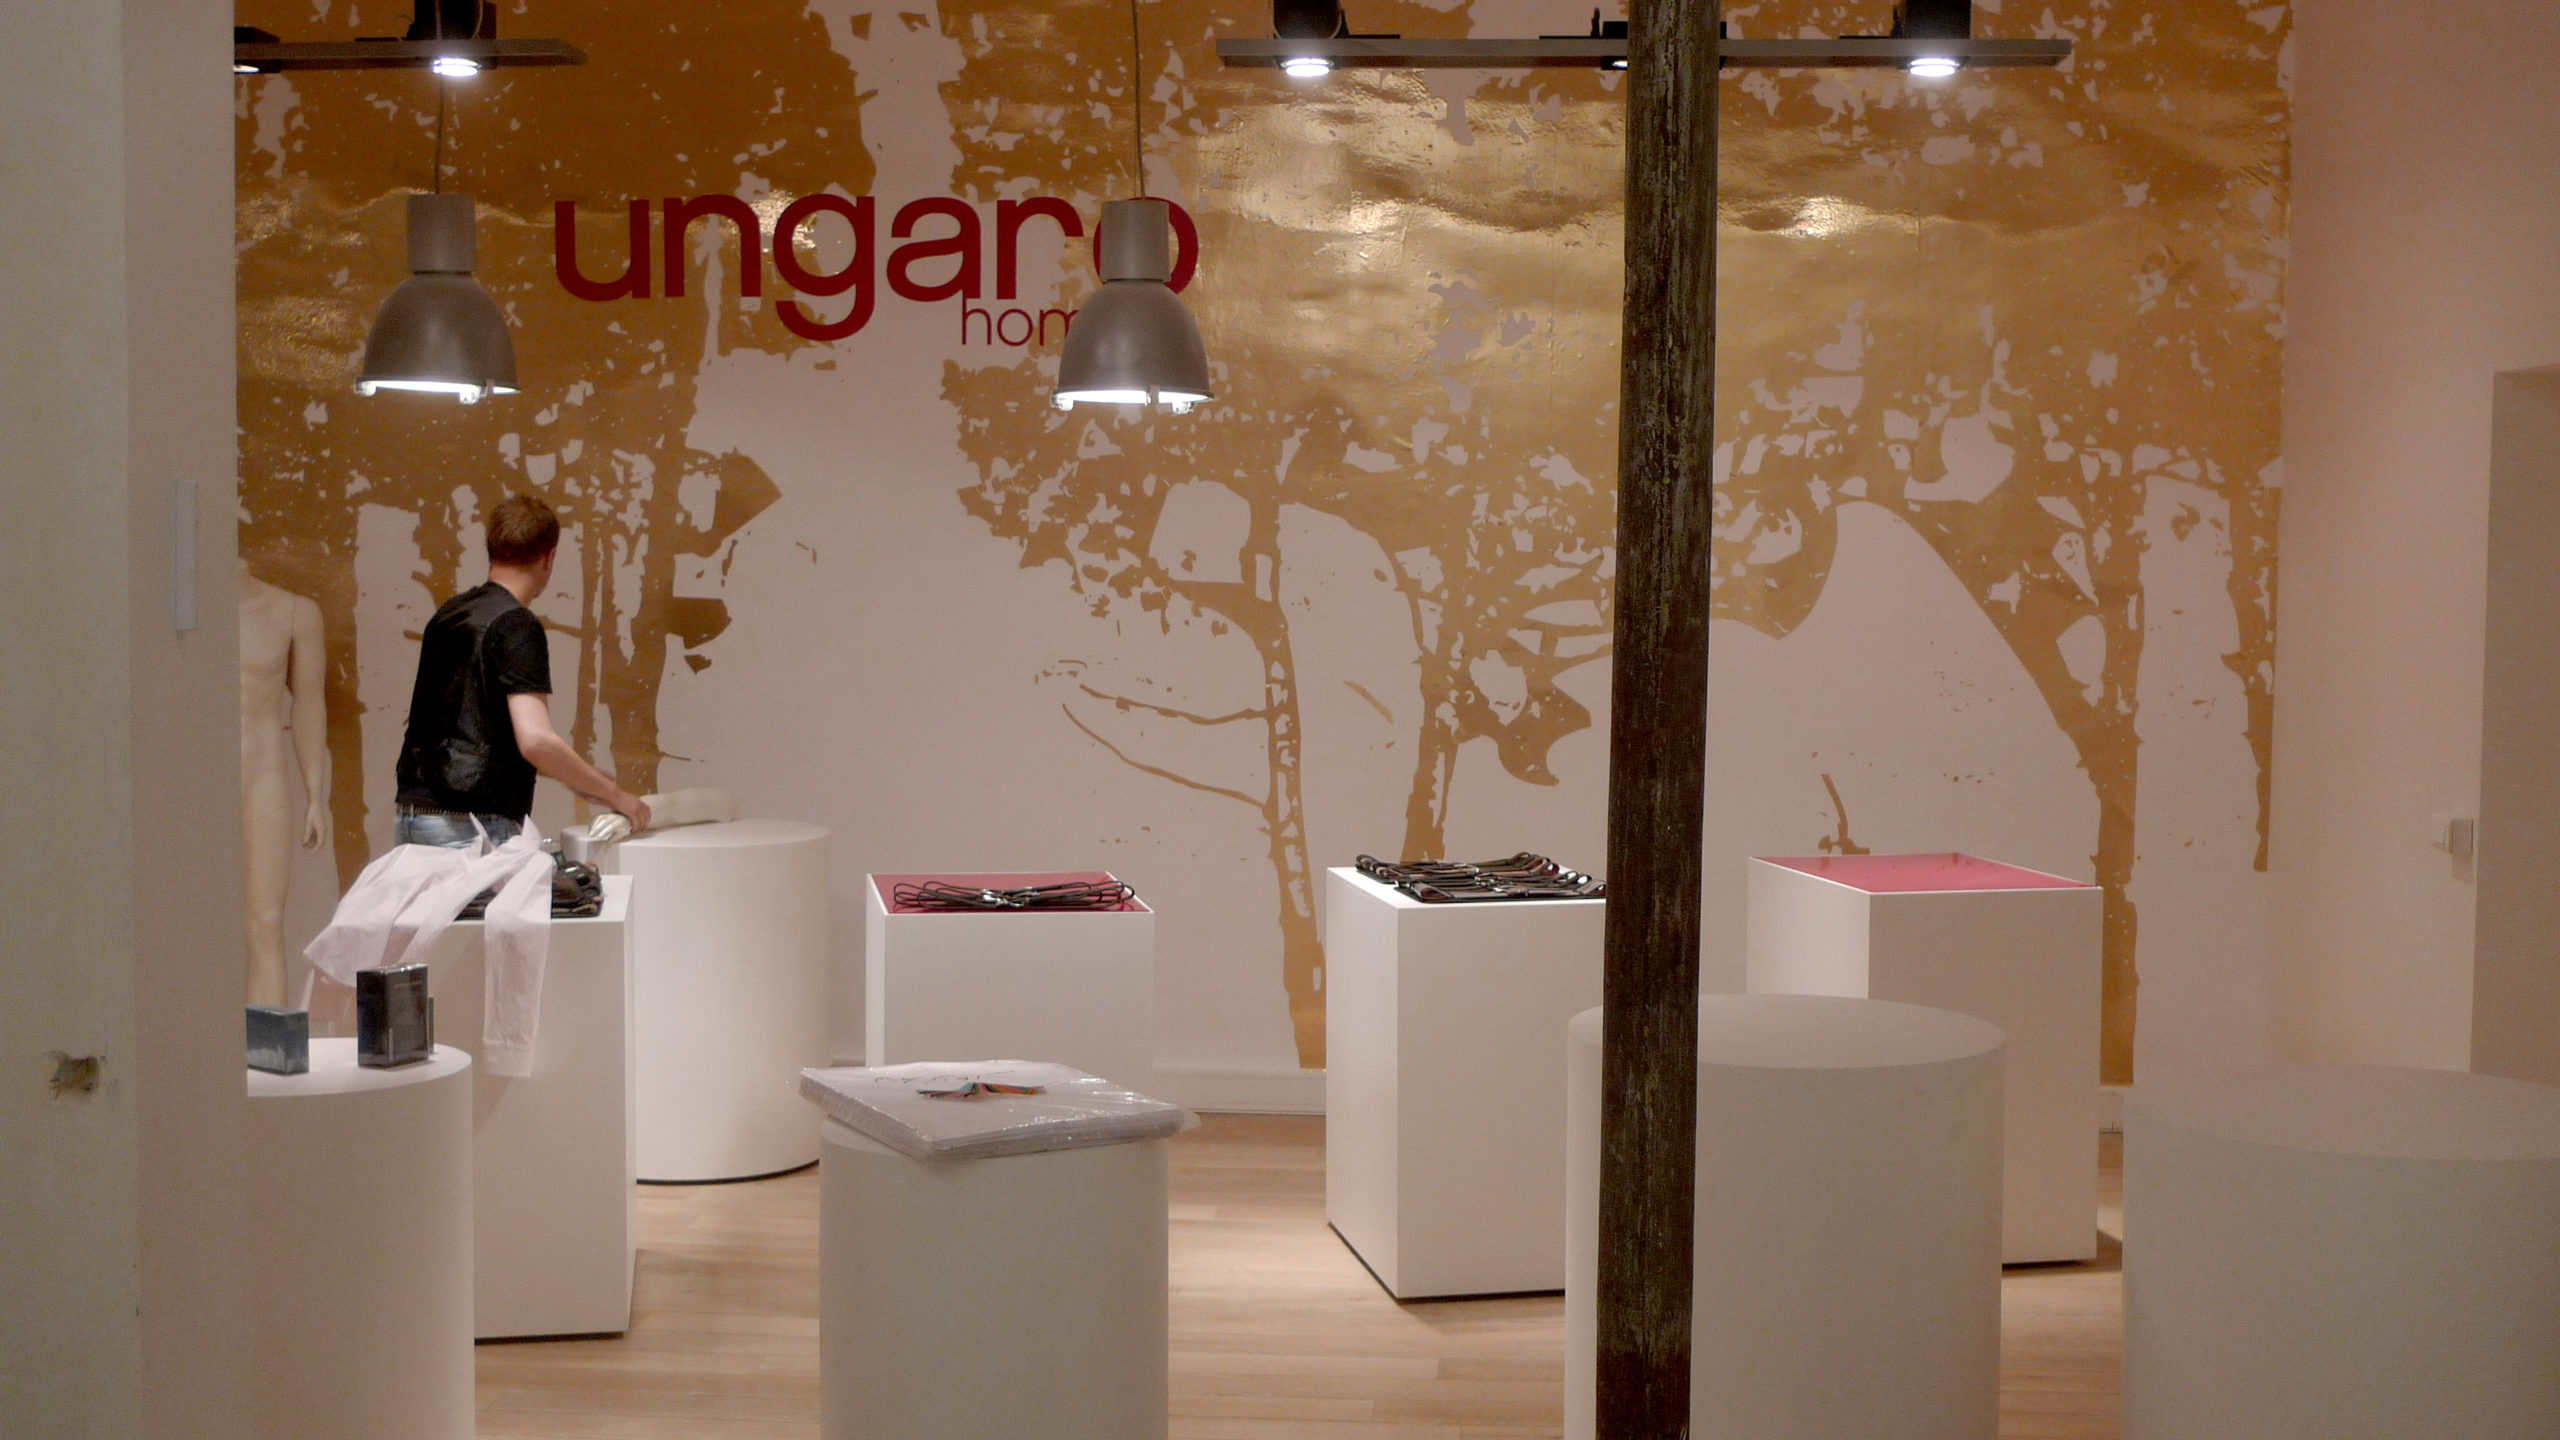 spatial practice architecture office Los Angeles Hong Kong emanuel ungaro showroom paris france free stand volumes